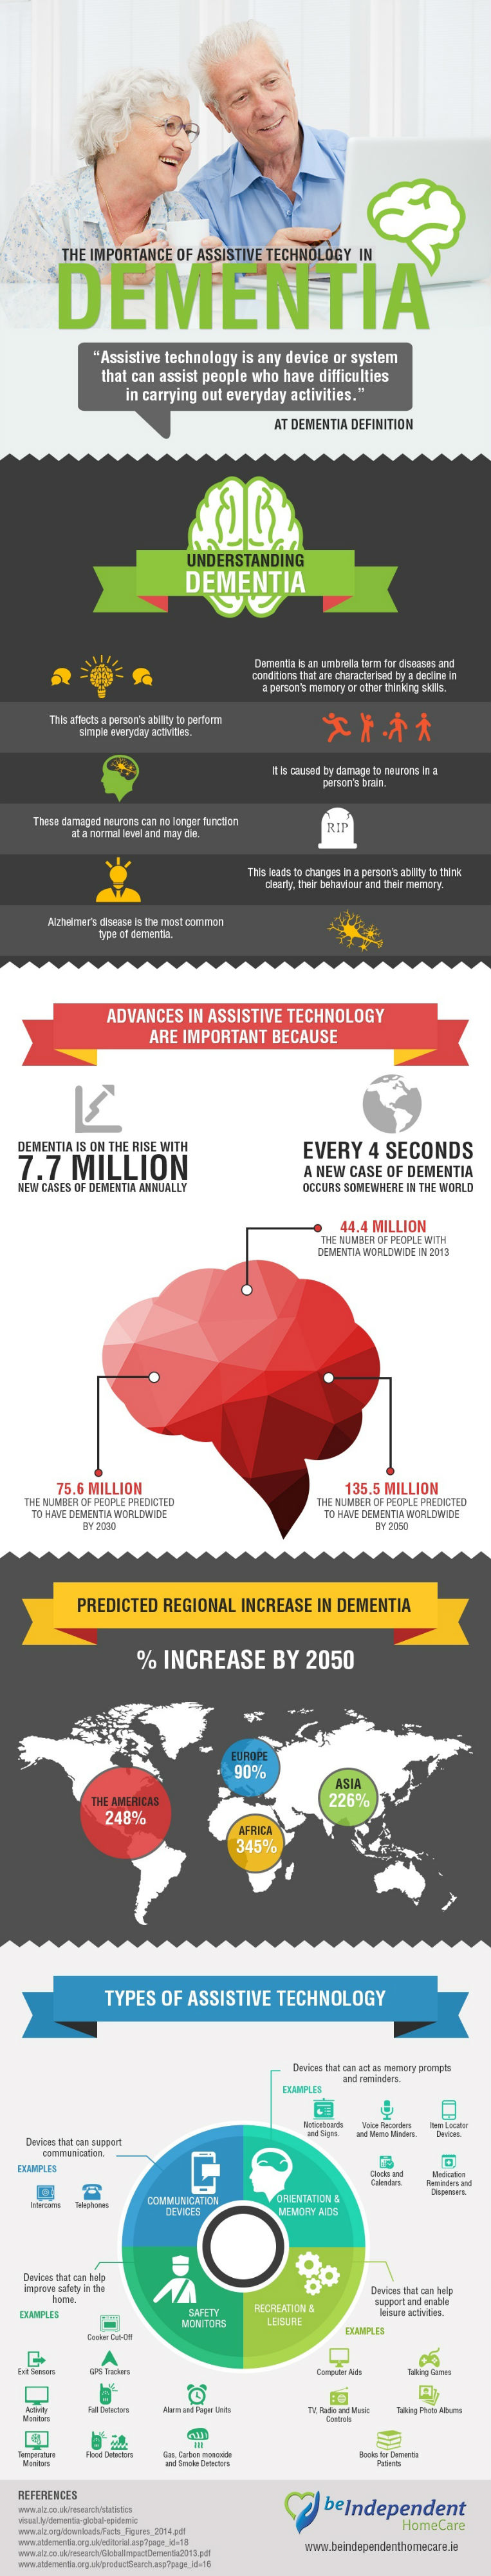 Importance of Assistive Technology in Dementia [Infographic]